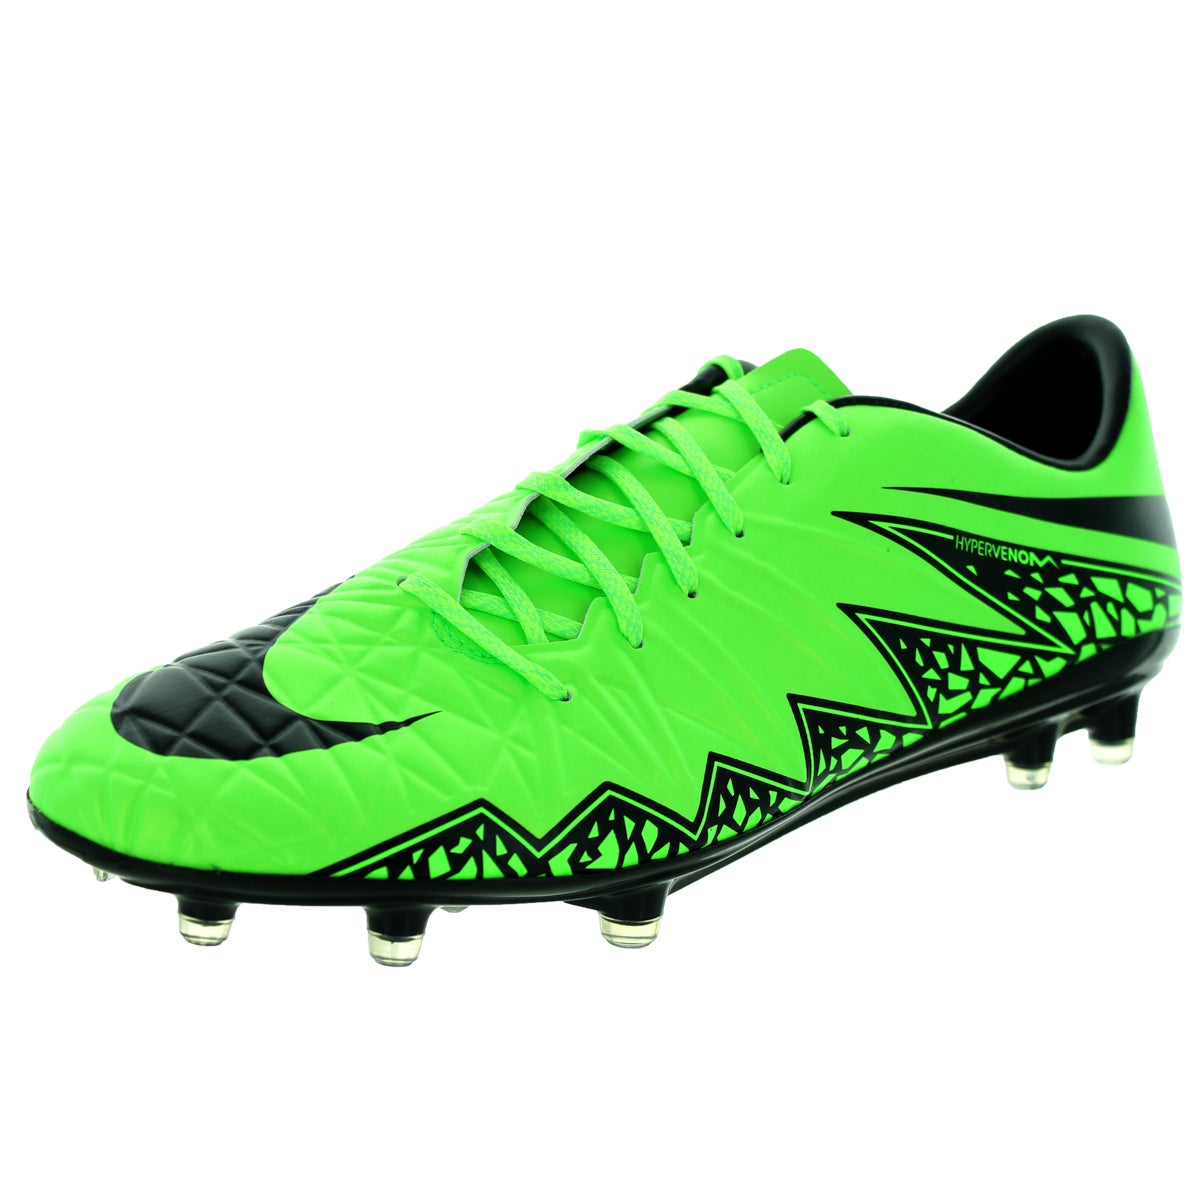 75a071b17031 Nike Men s Hypervenom Phatal Ii Fg Green Strike Black Black Soccer Cleat